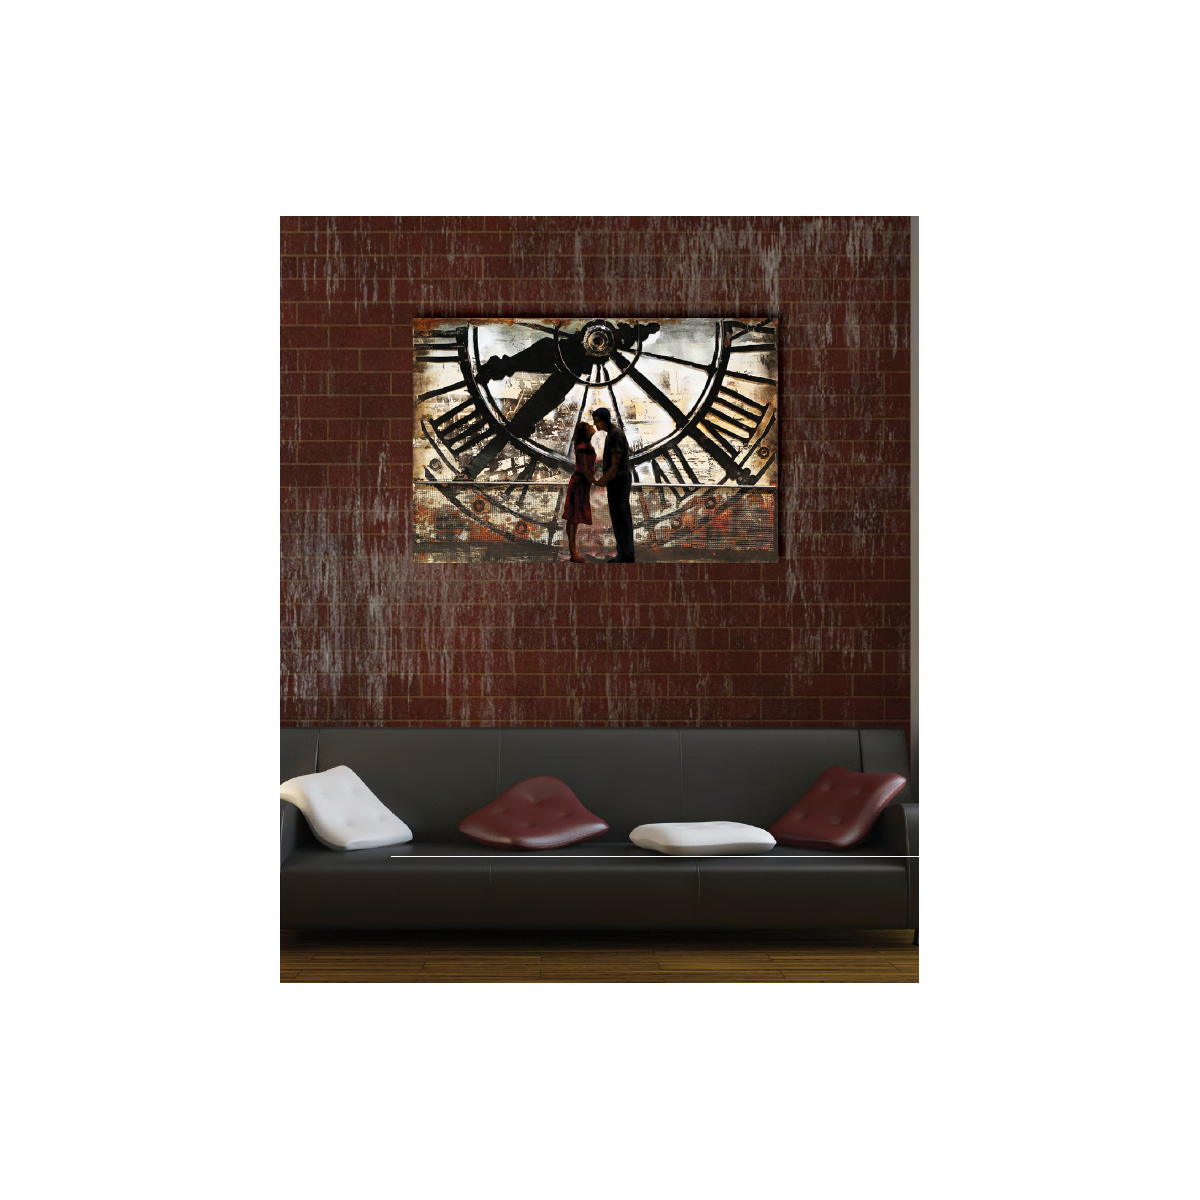 d coration murale en m tal horloge de gare. Black Bedroom Furniture Sets. Home Design Ideas